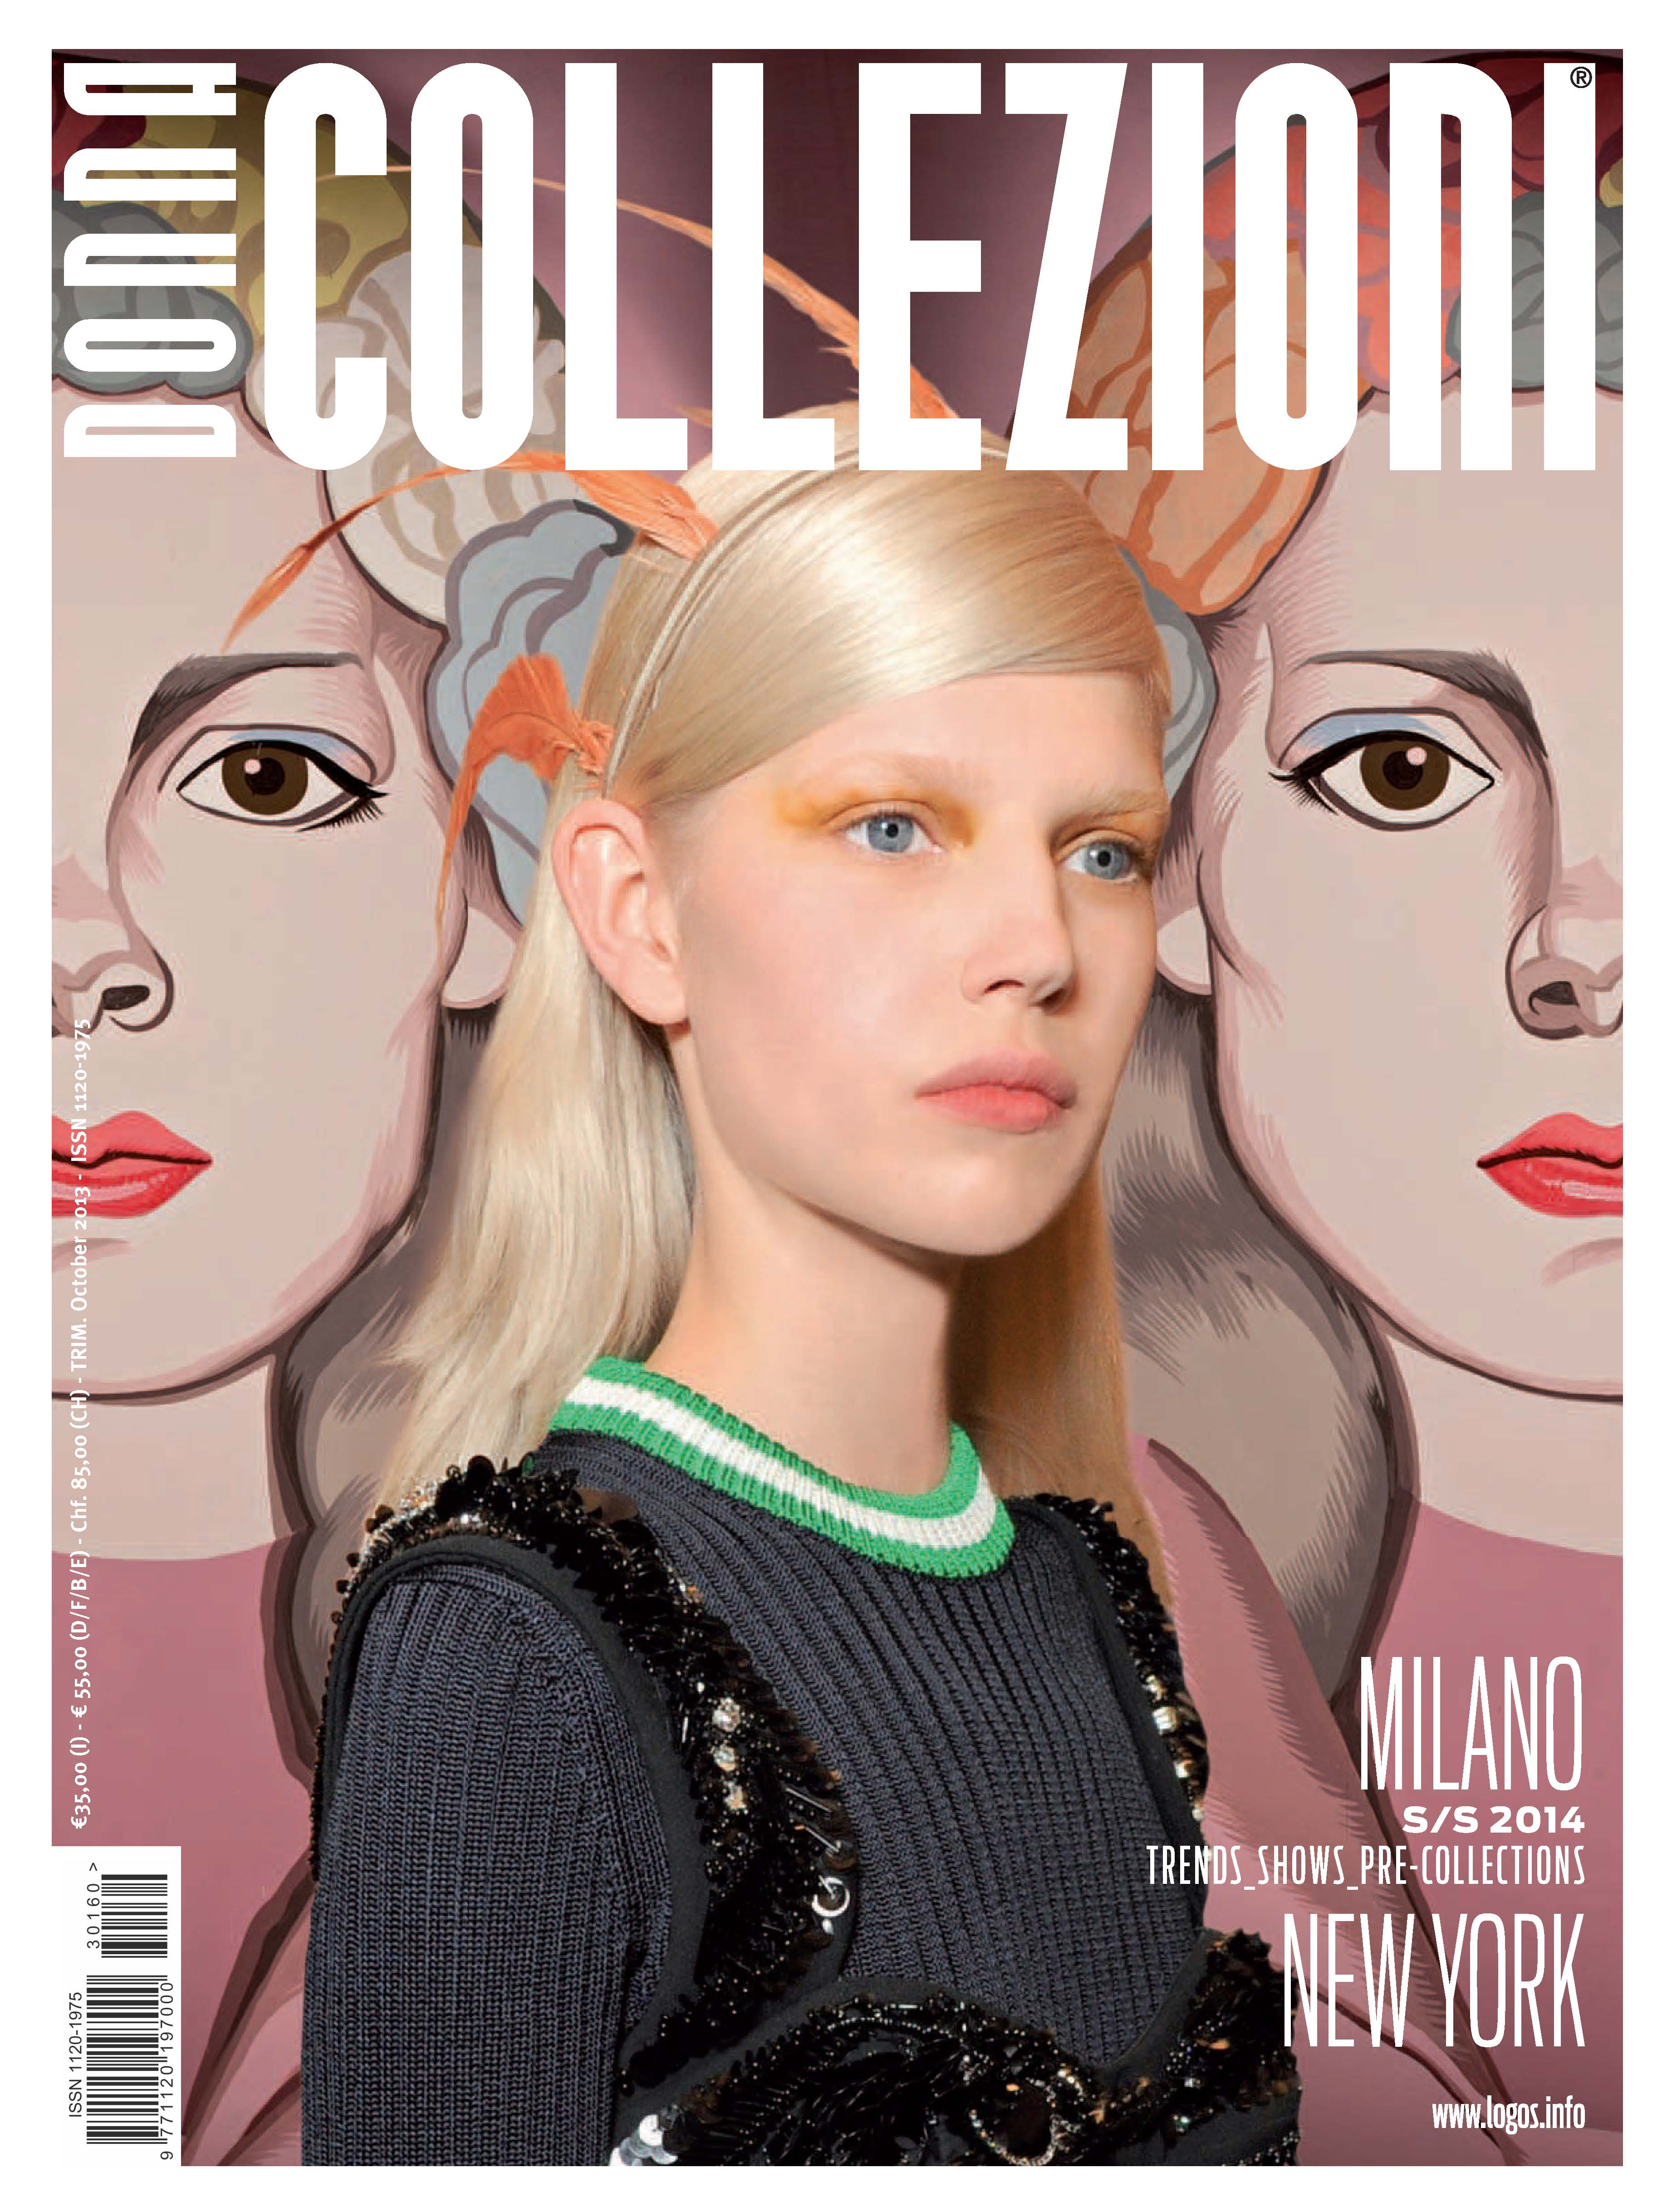 Collezioni Donna Pret-a-Porter Milano 160 has just been published!